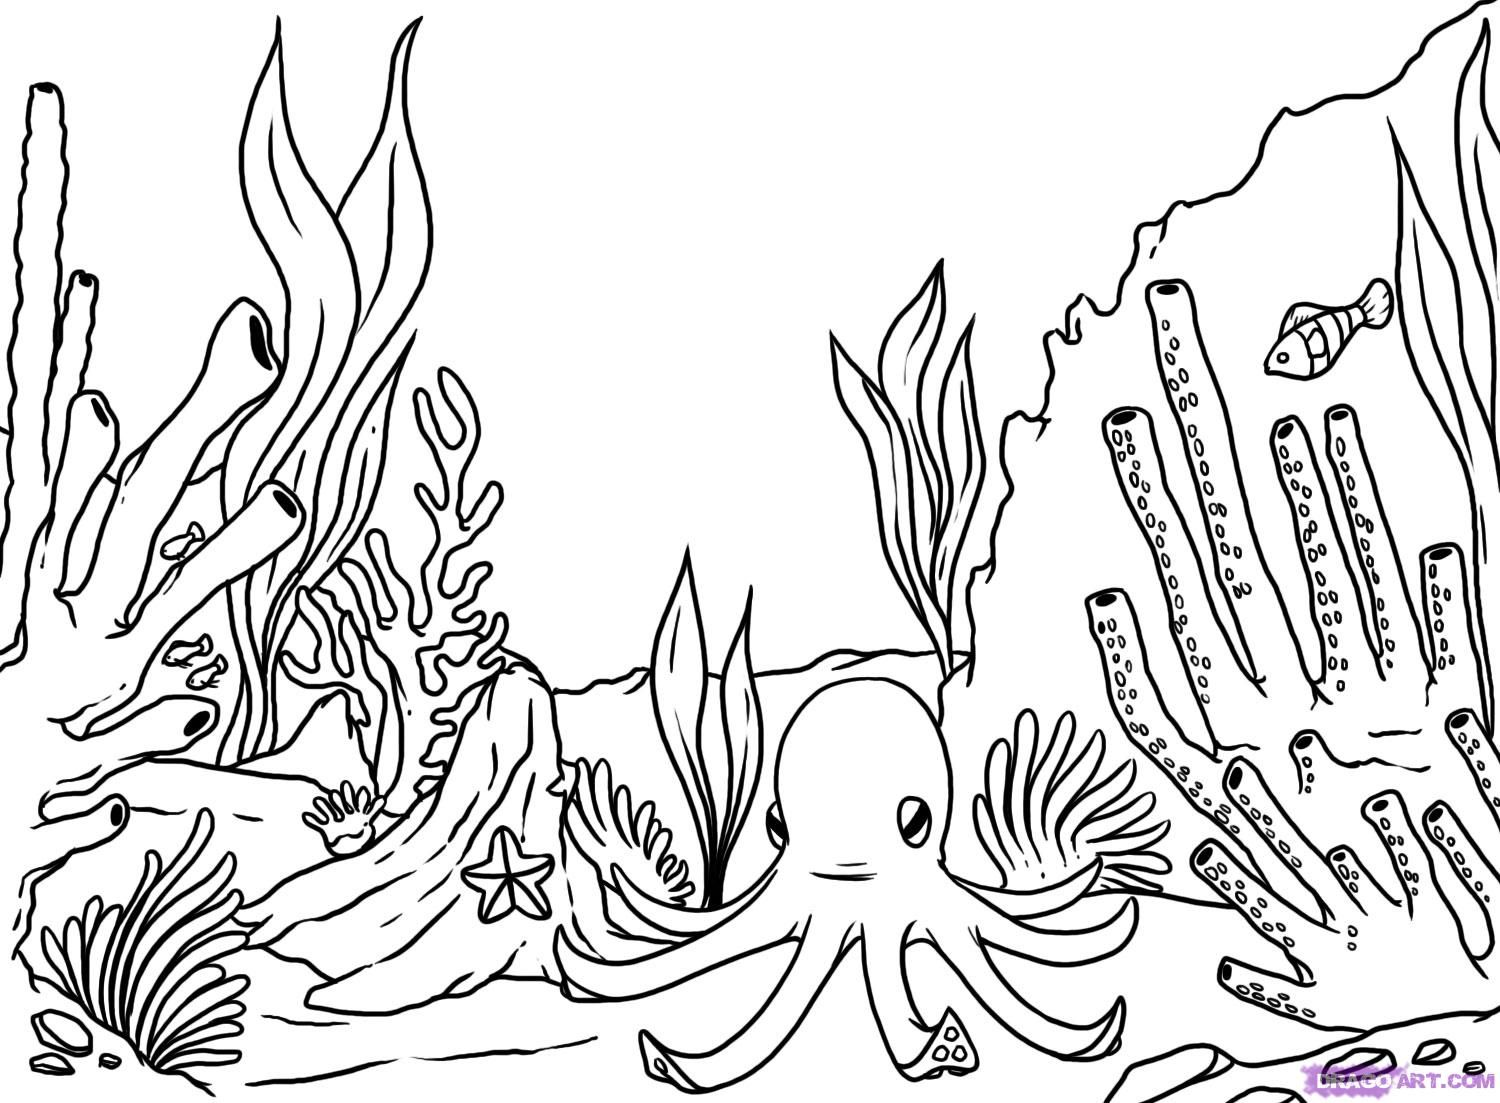 how to draw a coral reef step 8 | Drawing | Pinterest | Coral ...